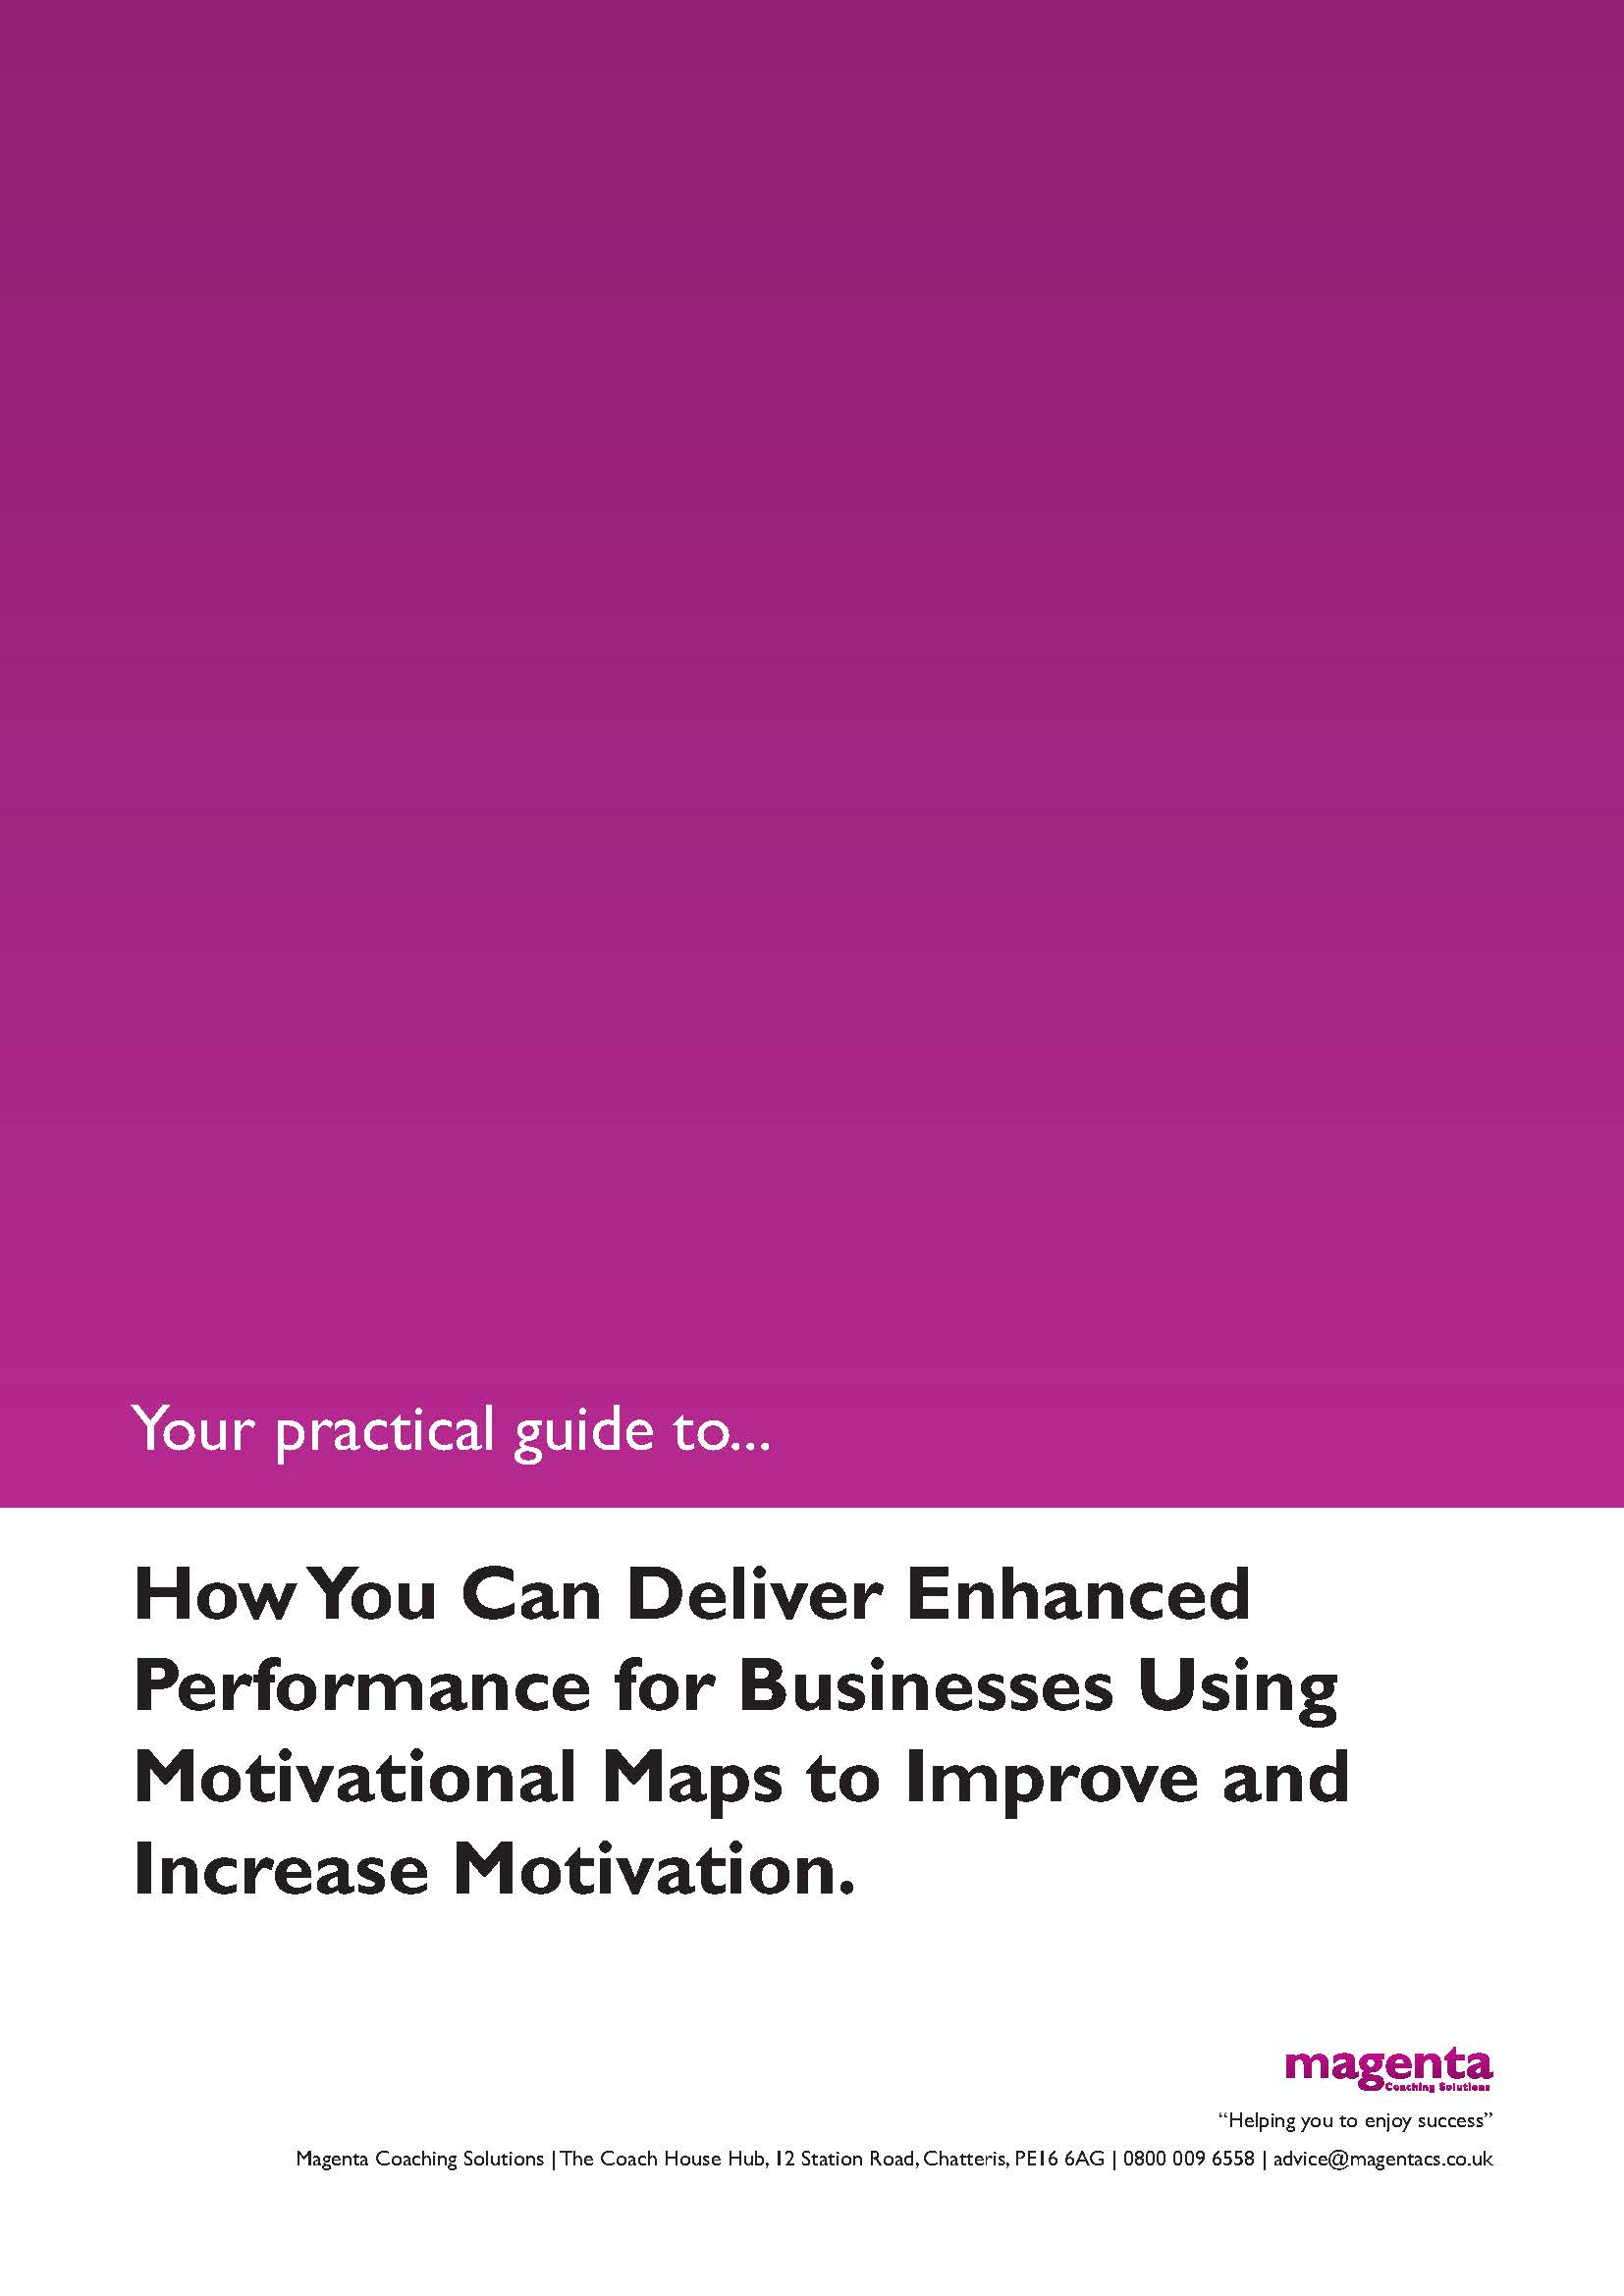 Motivational Mapping in Business guide.1